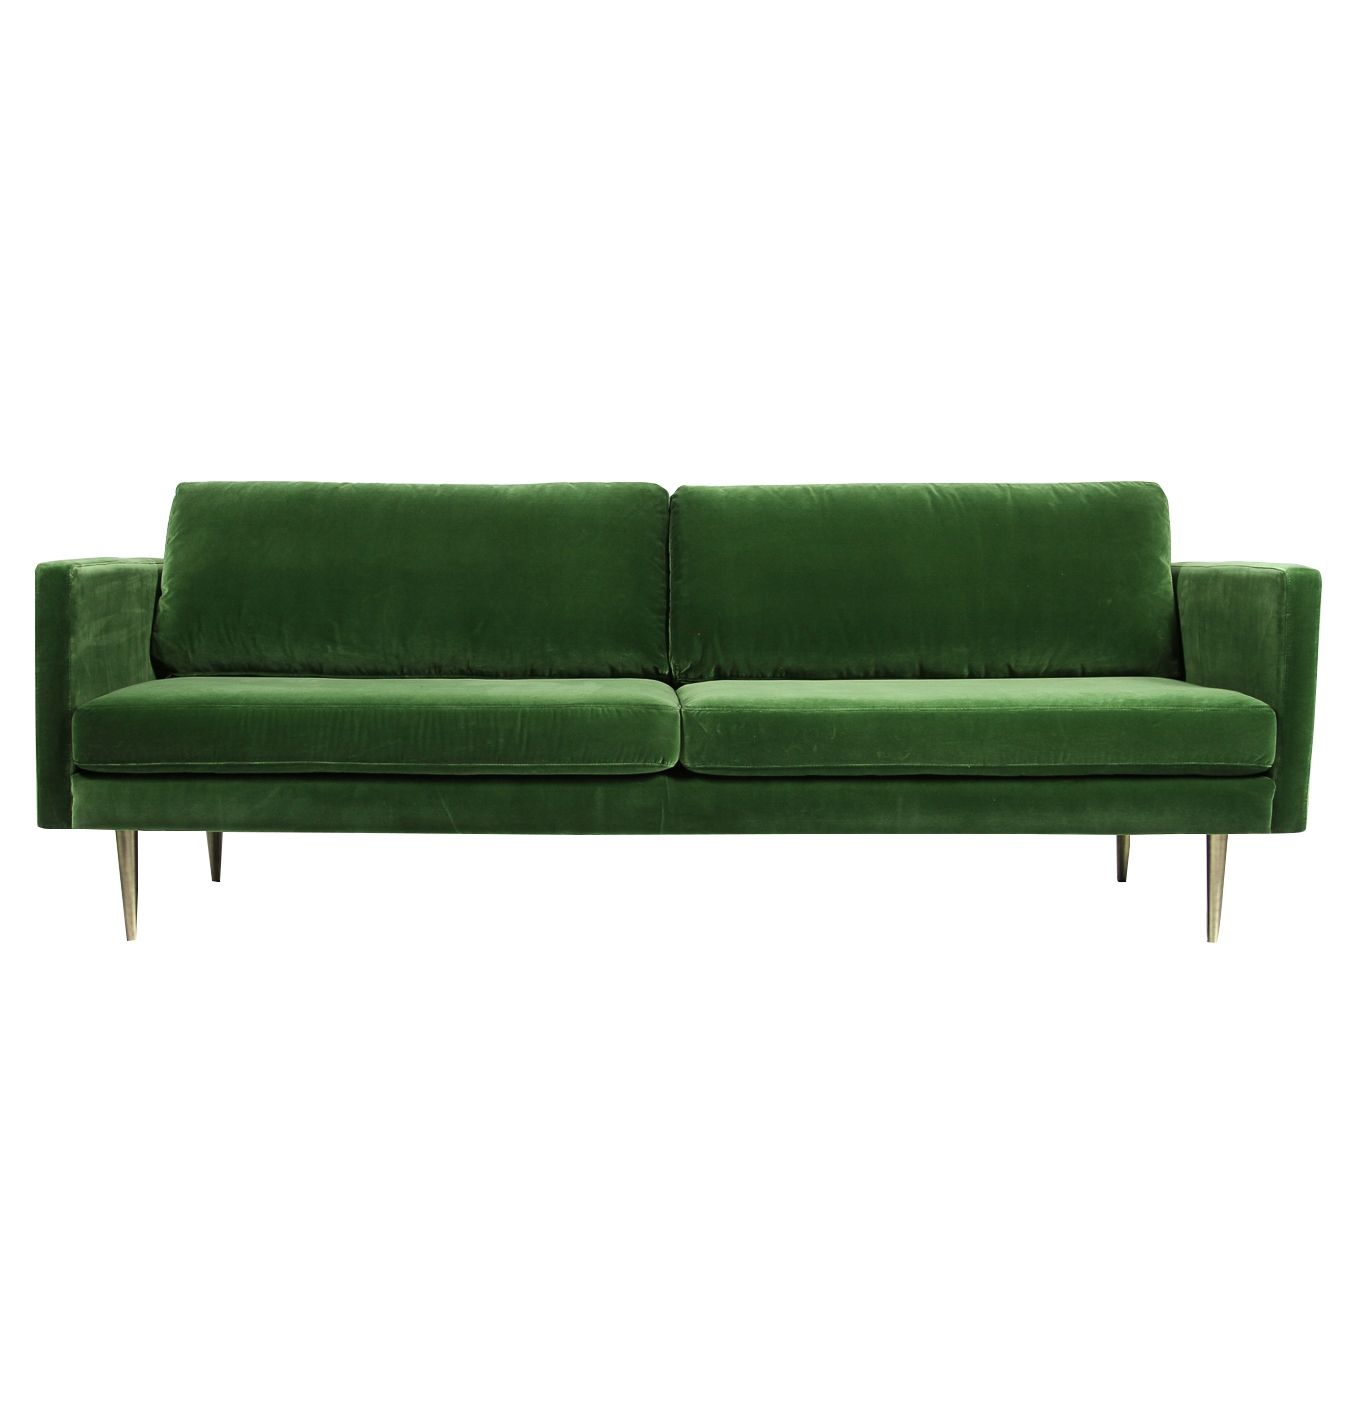 Bettsessel Mit Rollen I Want This Sofa So Damn Much The Big Apple Velvet 3 Seater Sofa